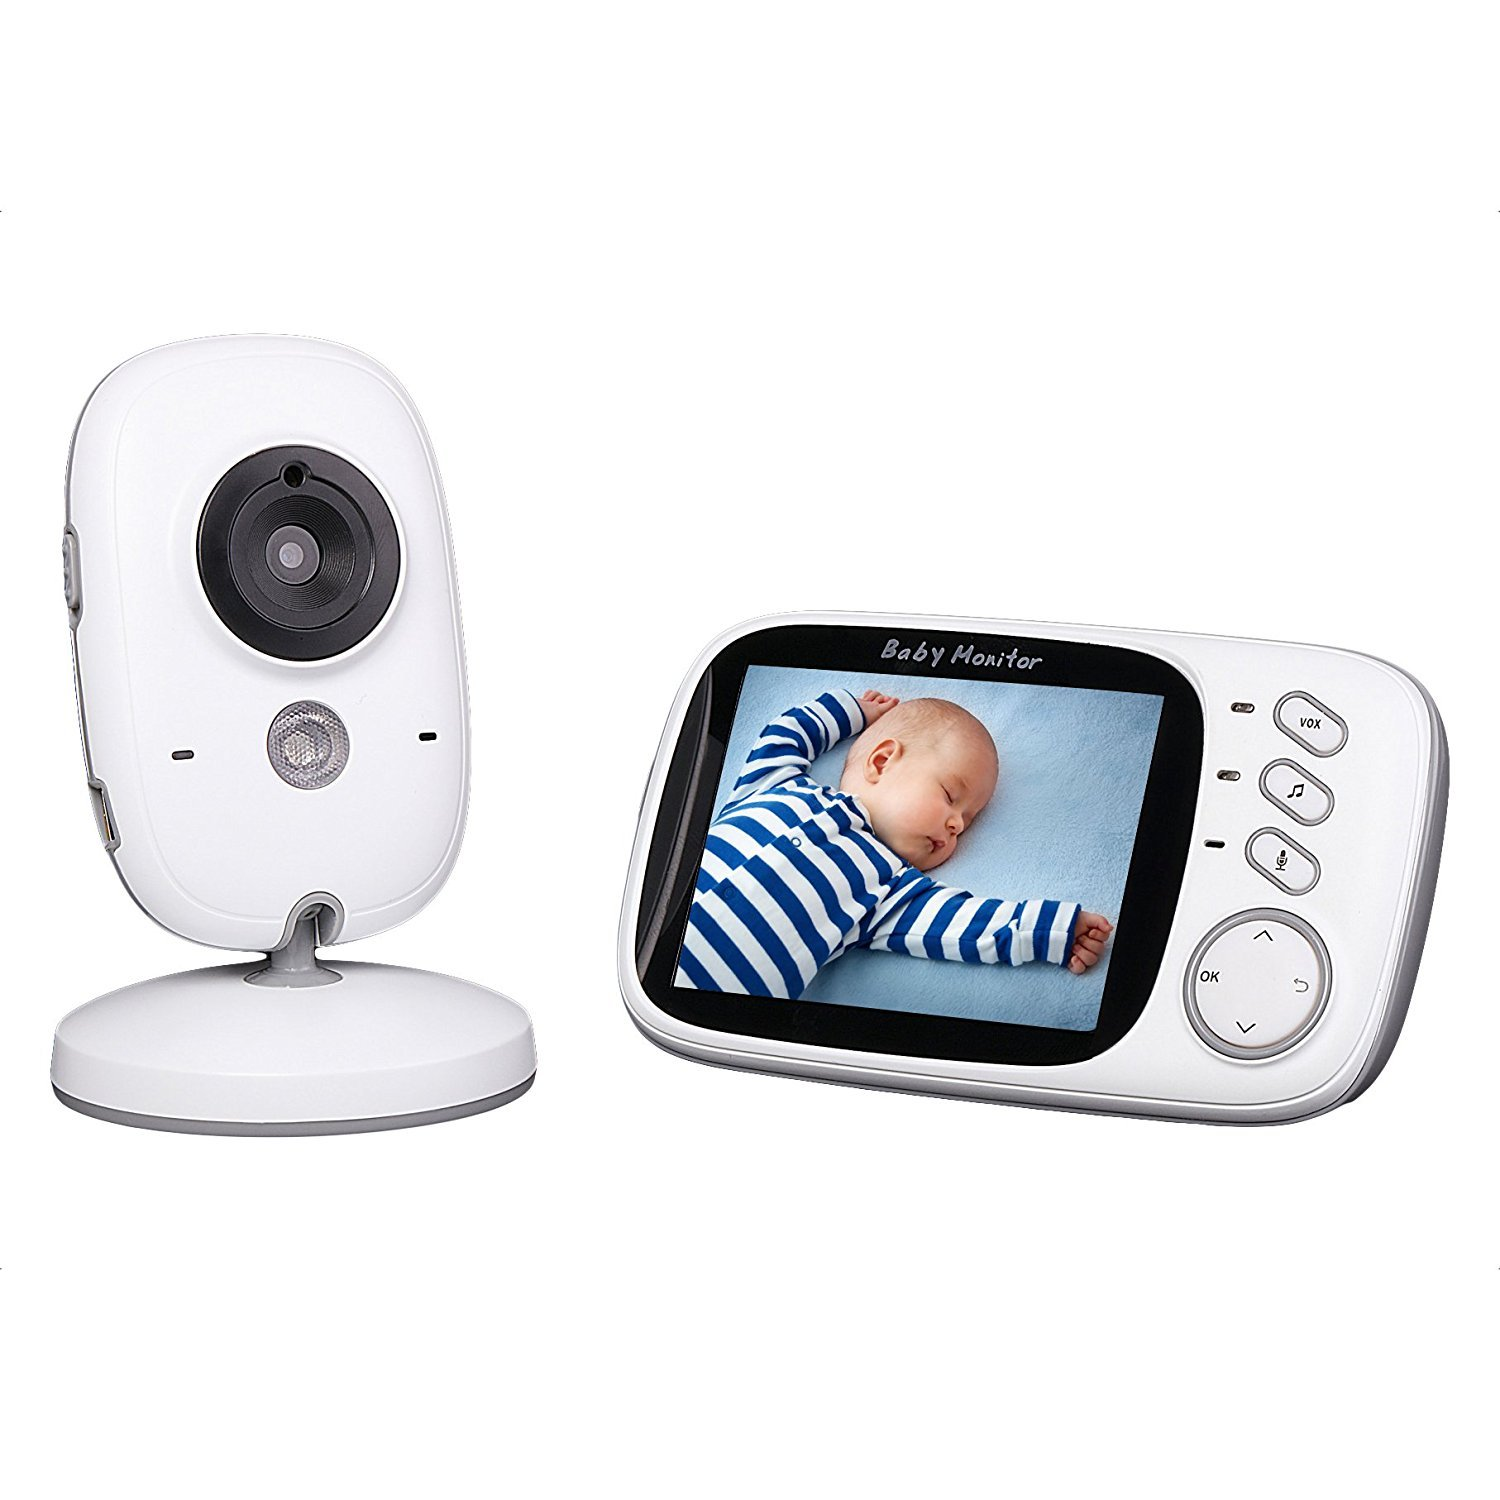 Baby Monitor, 3.2'' LCD Display Babyphone Camera Digital Audio Video con Citofono Visione Notturna Monitoraggio Temperatura 8 Ninnananne per Bambini Videosorveglianza Sicurezza Talent Star